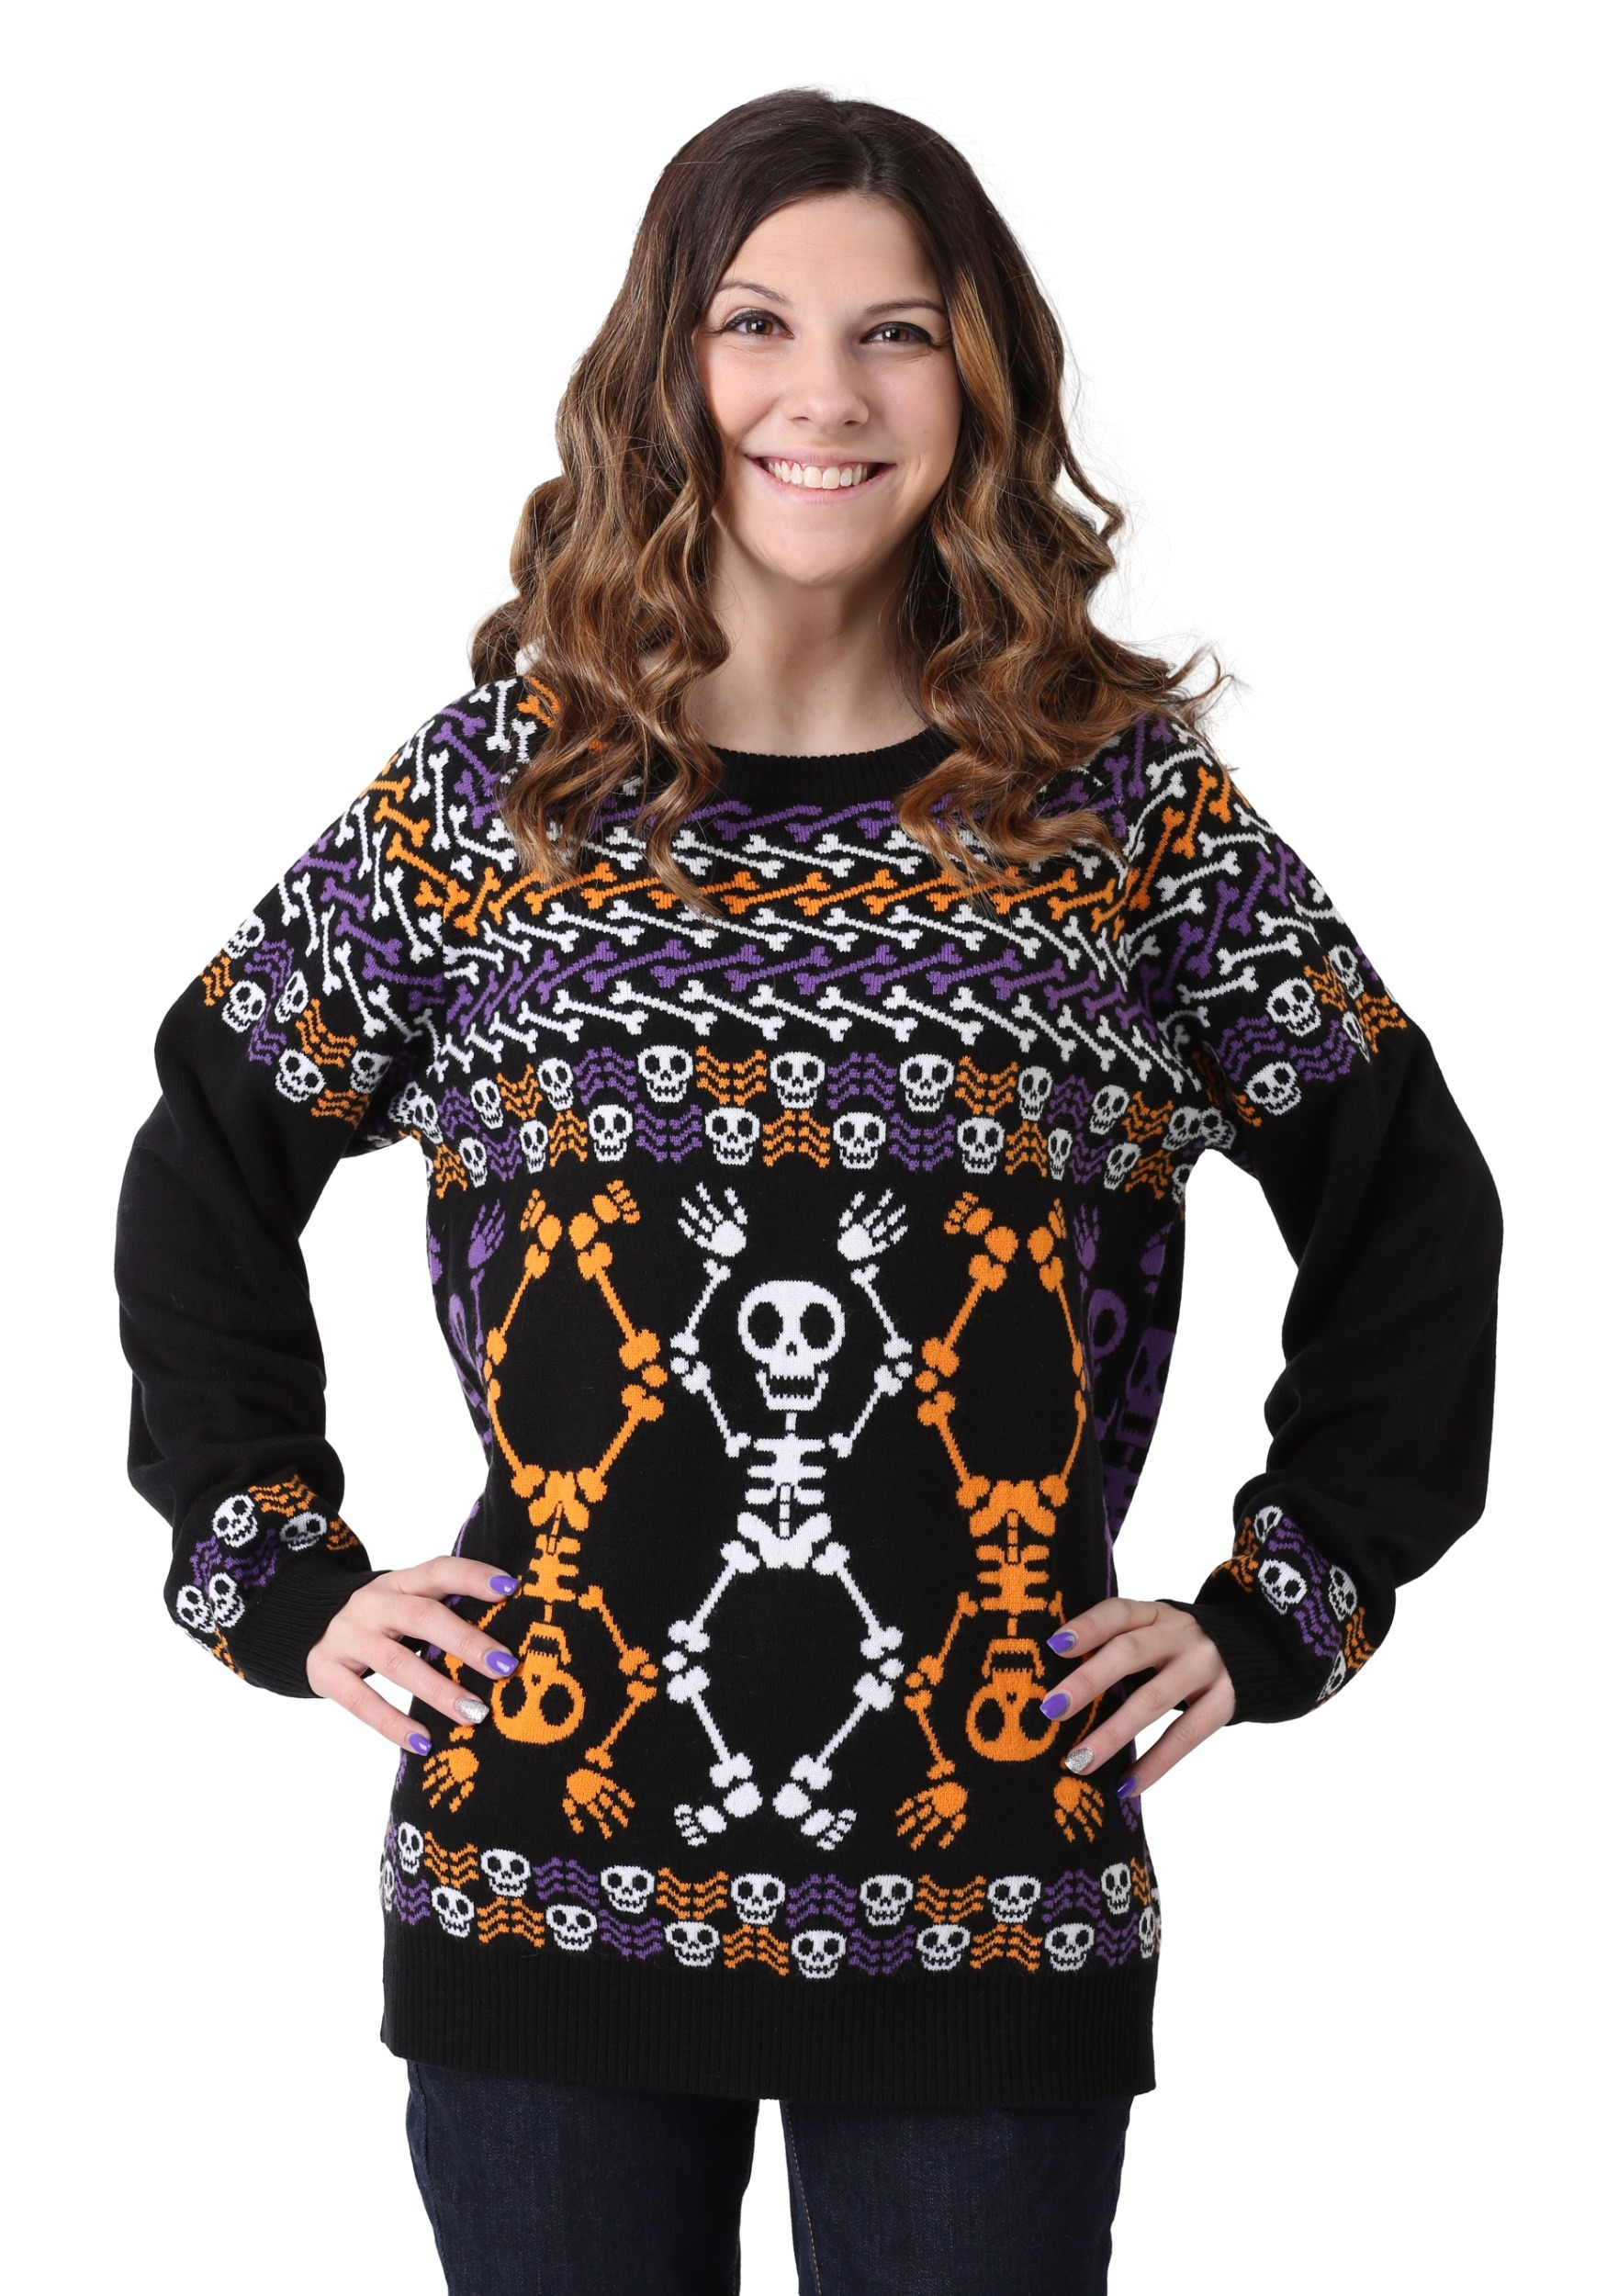 Day of the Dead Dancing Skeletons Ugly Halloween Sweater for Adults